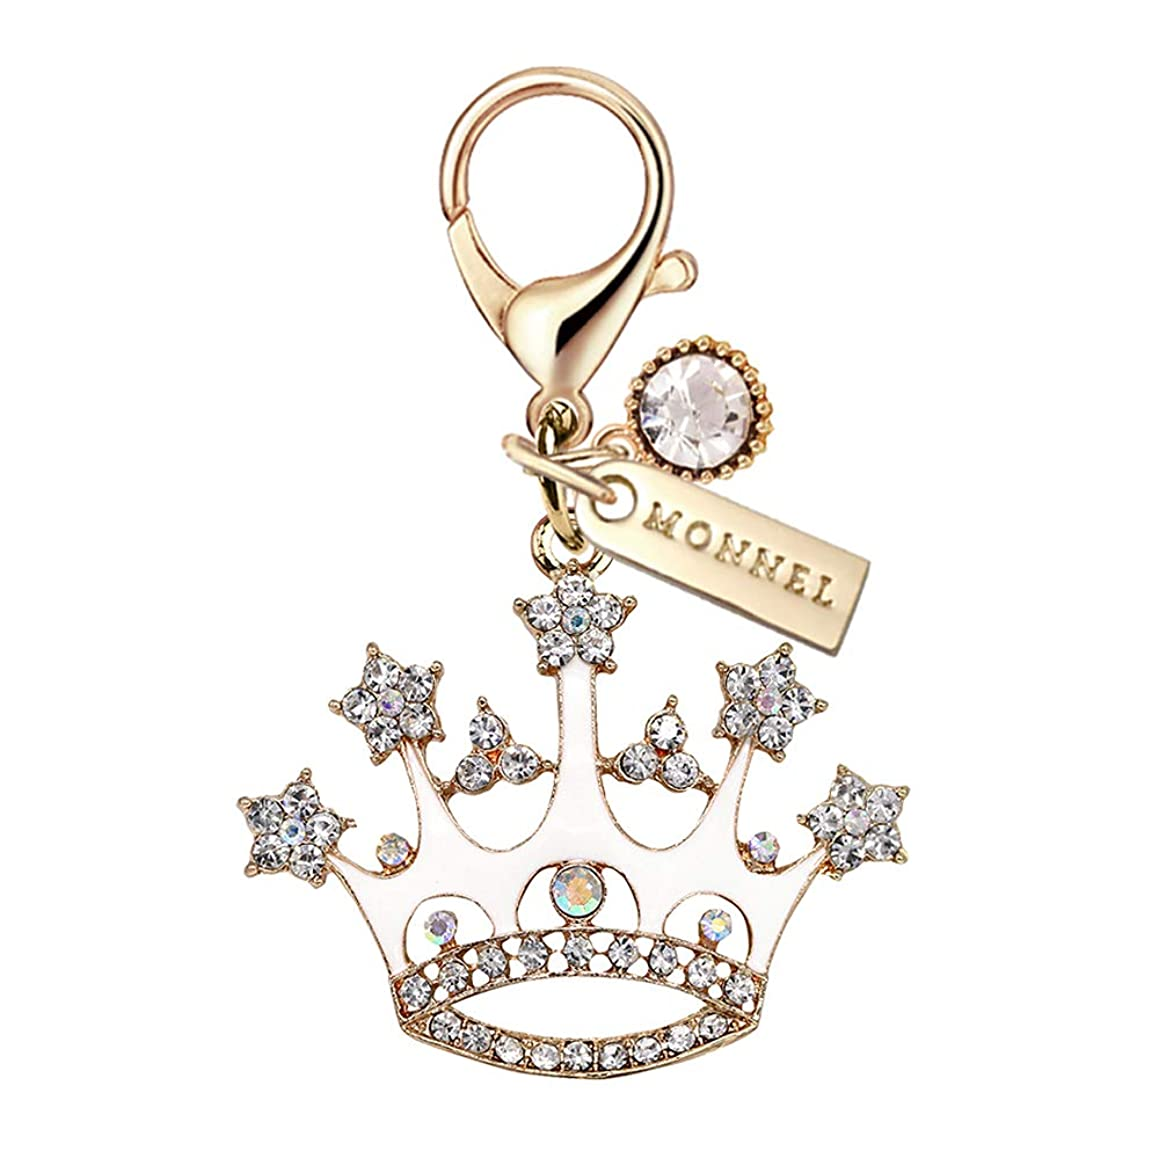 MC130 New Cute Crystal White Queen Crown Big Lobster Charm Pendant with Pouch Bag (1 Piece)